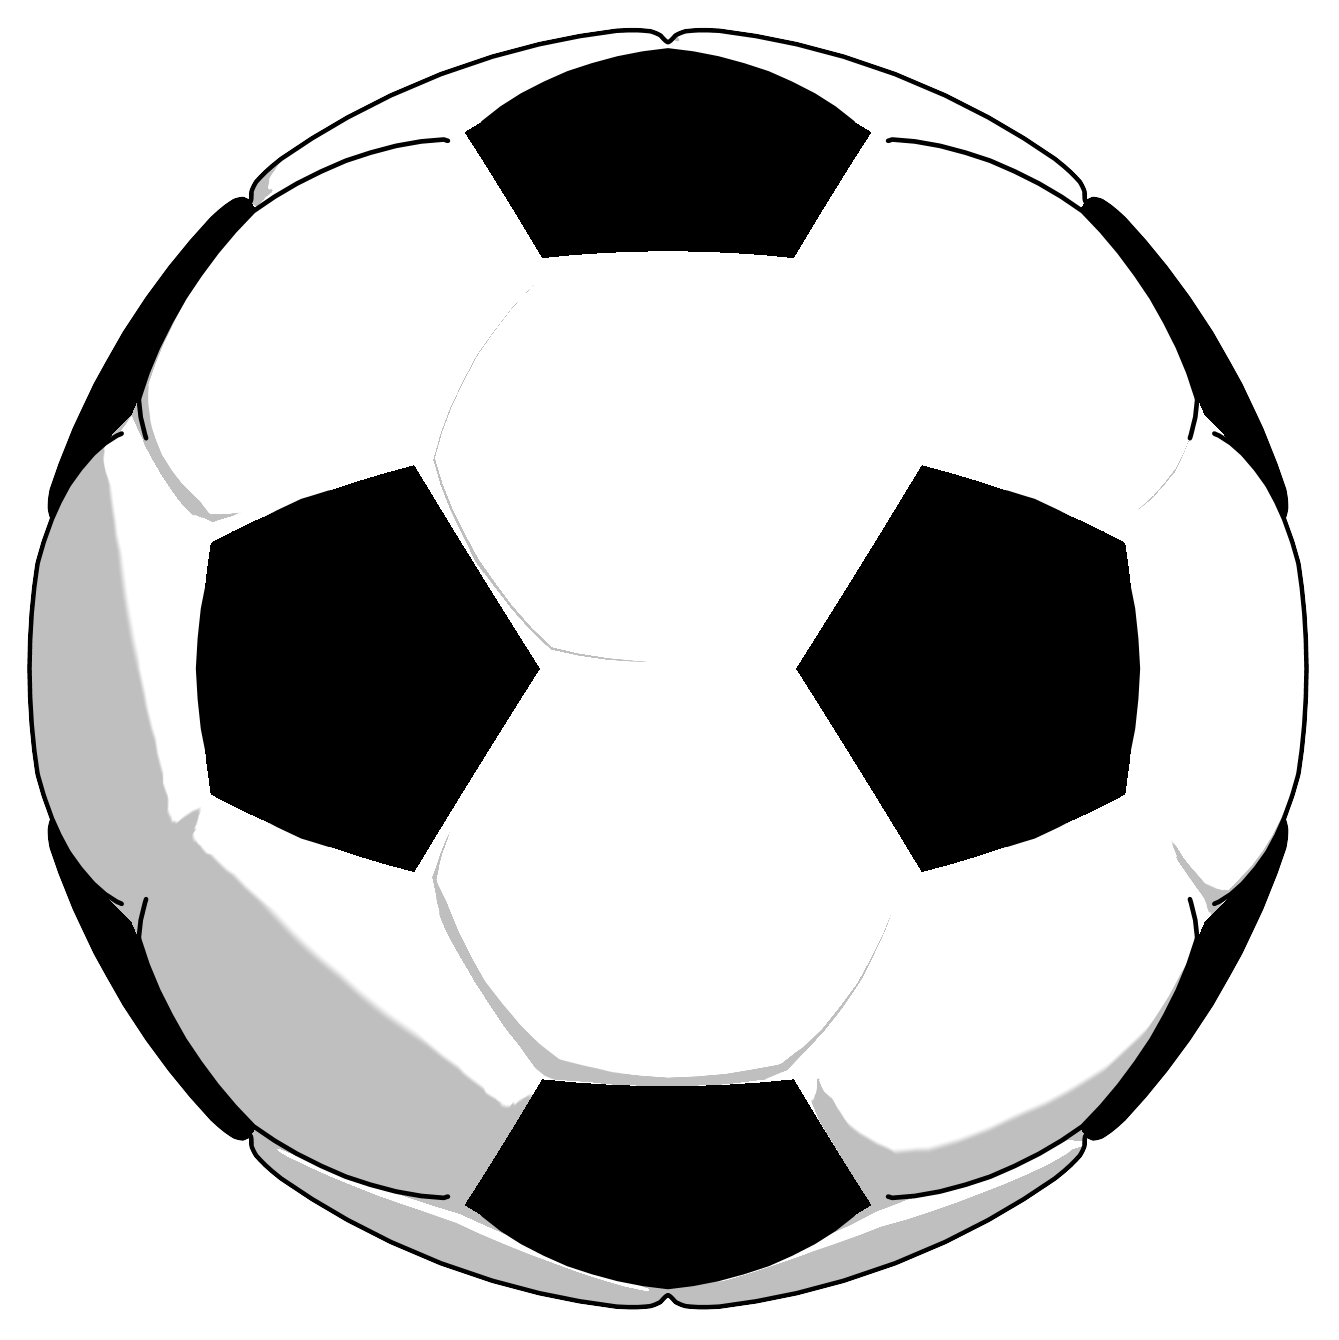 png royalty free Soccer ball png picture. Sport balls clipart black and white